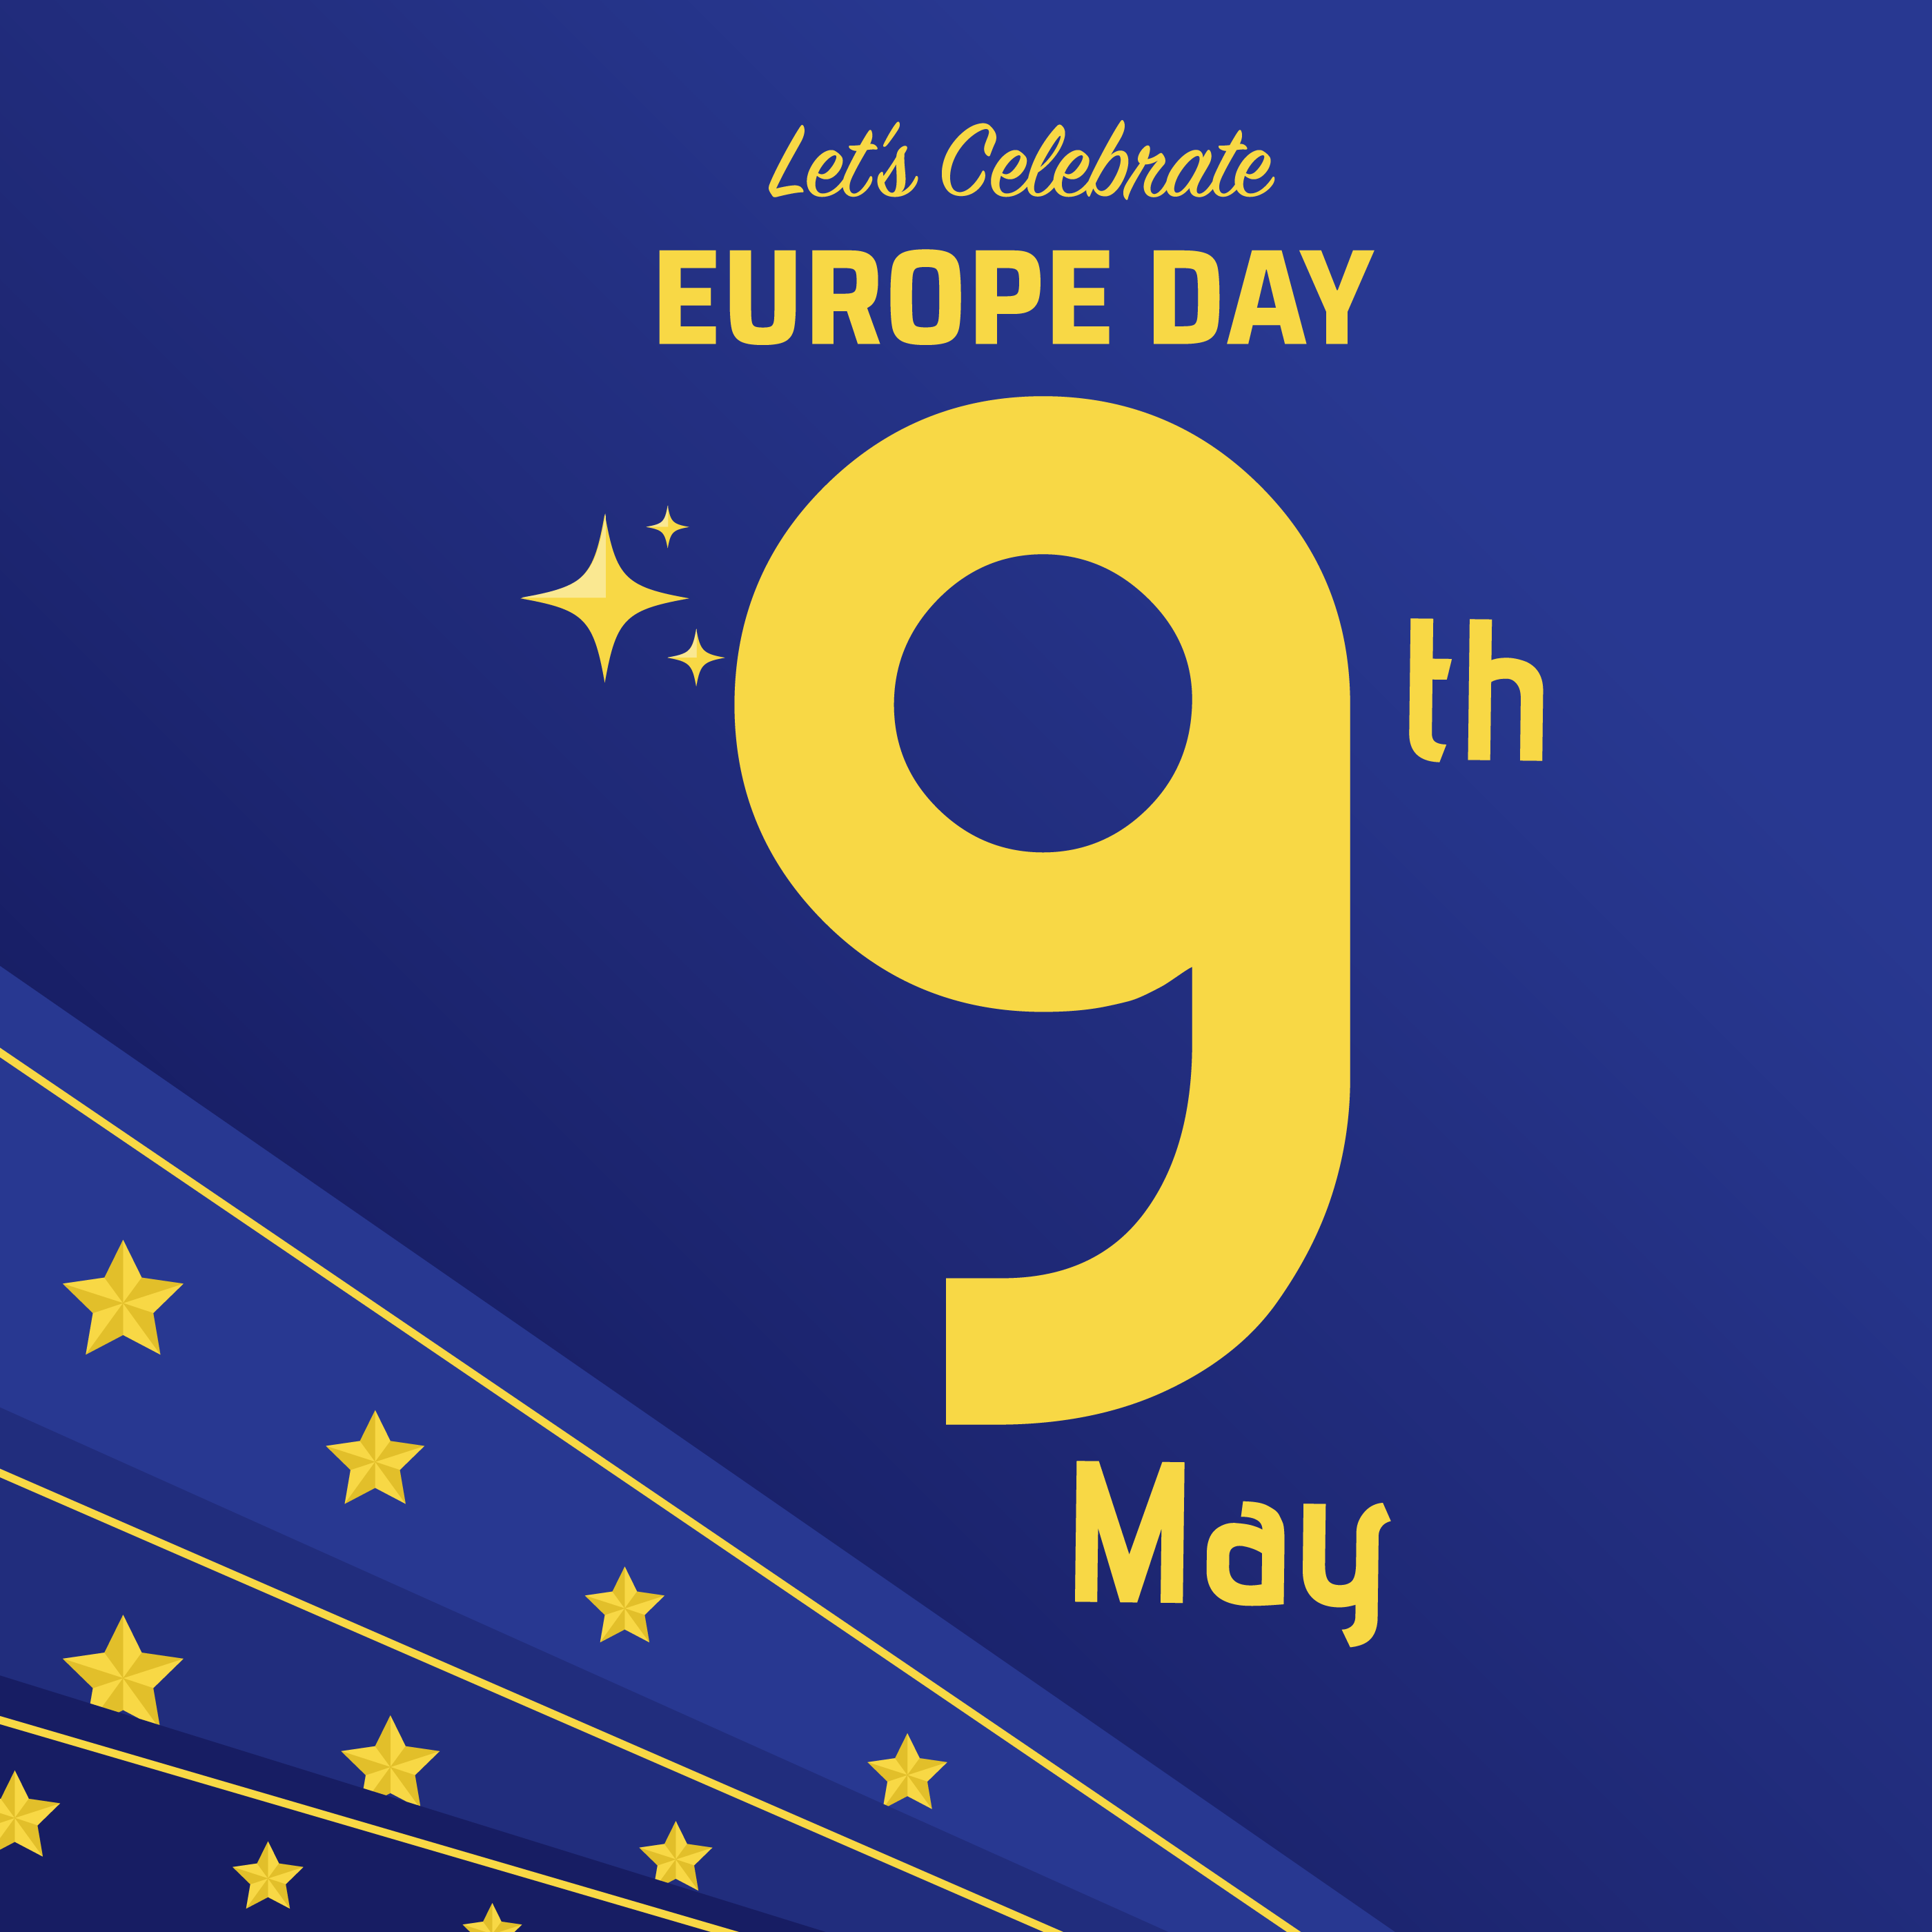 Europe Day Celebration Background Download Free Vector